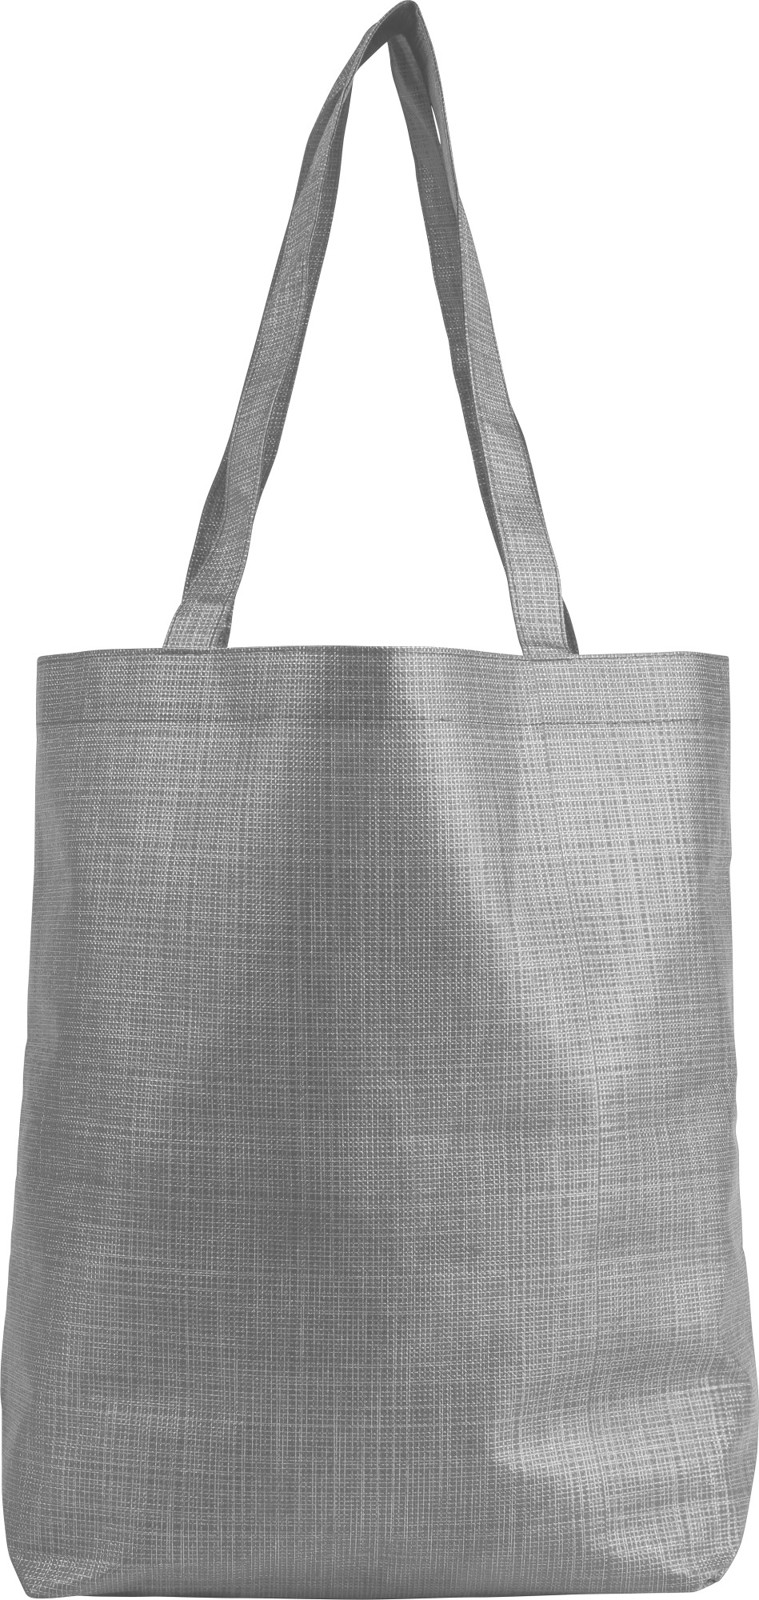 Nonwoven (70 gr/m²) shopping bag - Grey